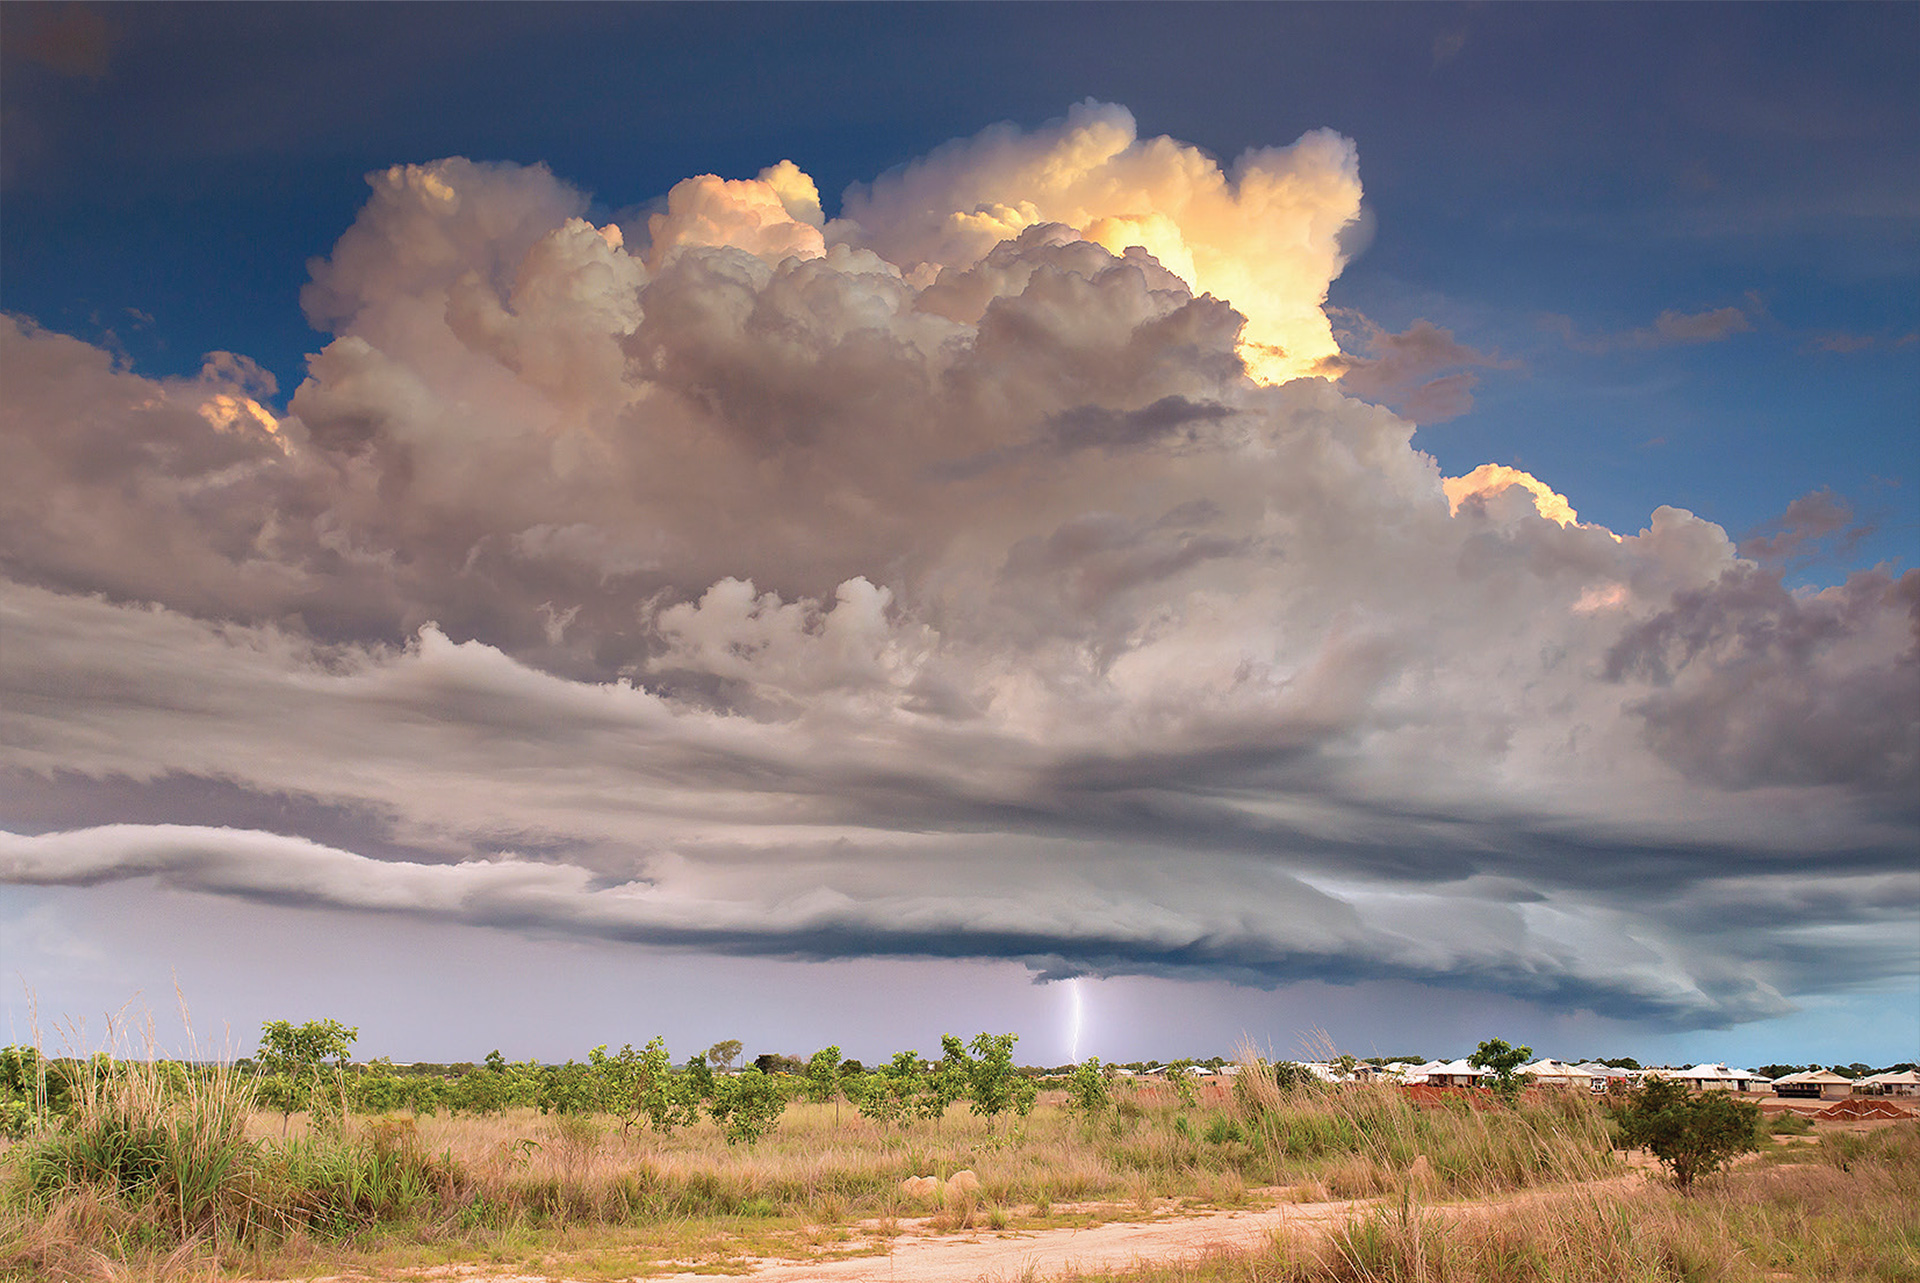 Large storm clouds in sky over grassy foreground, a lightning bolt coming from the cloud to the ground